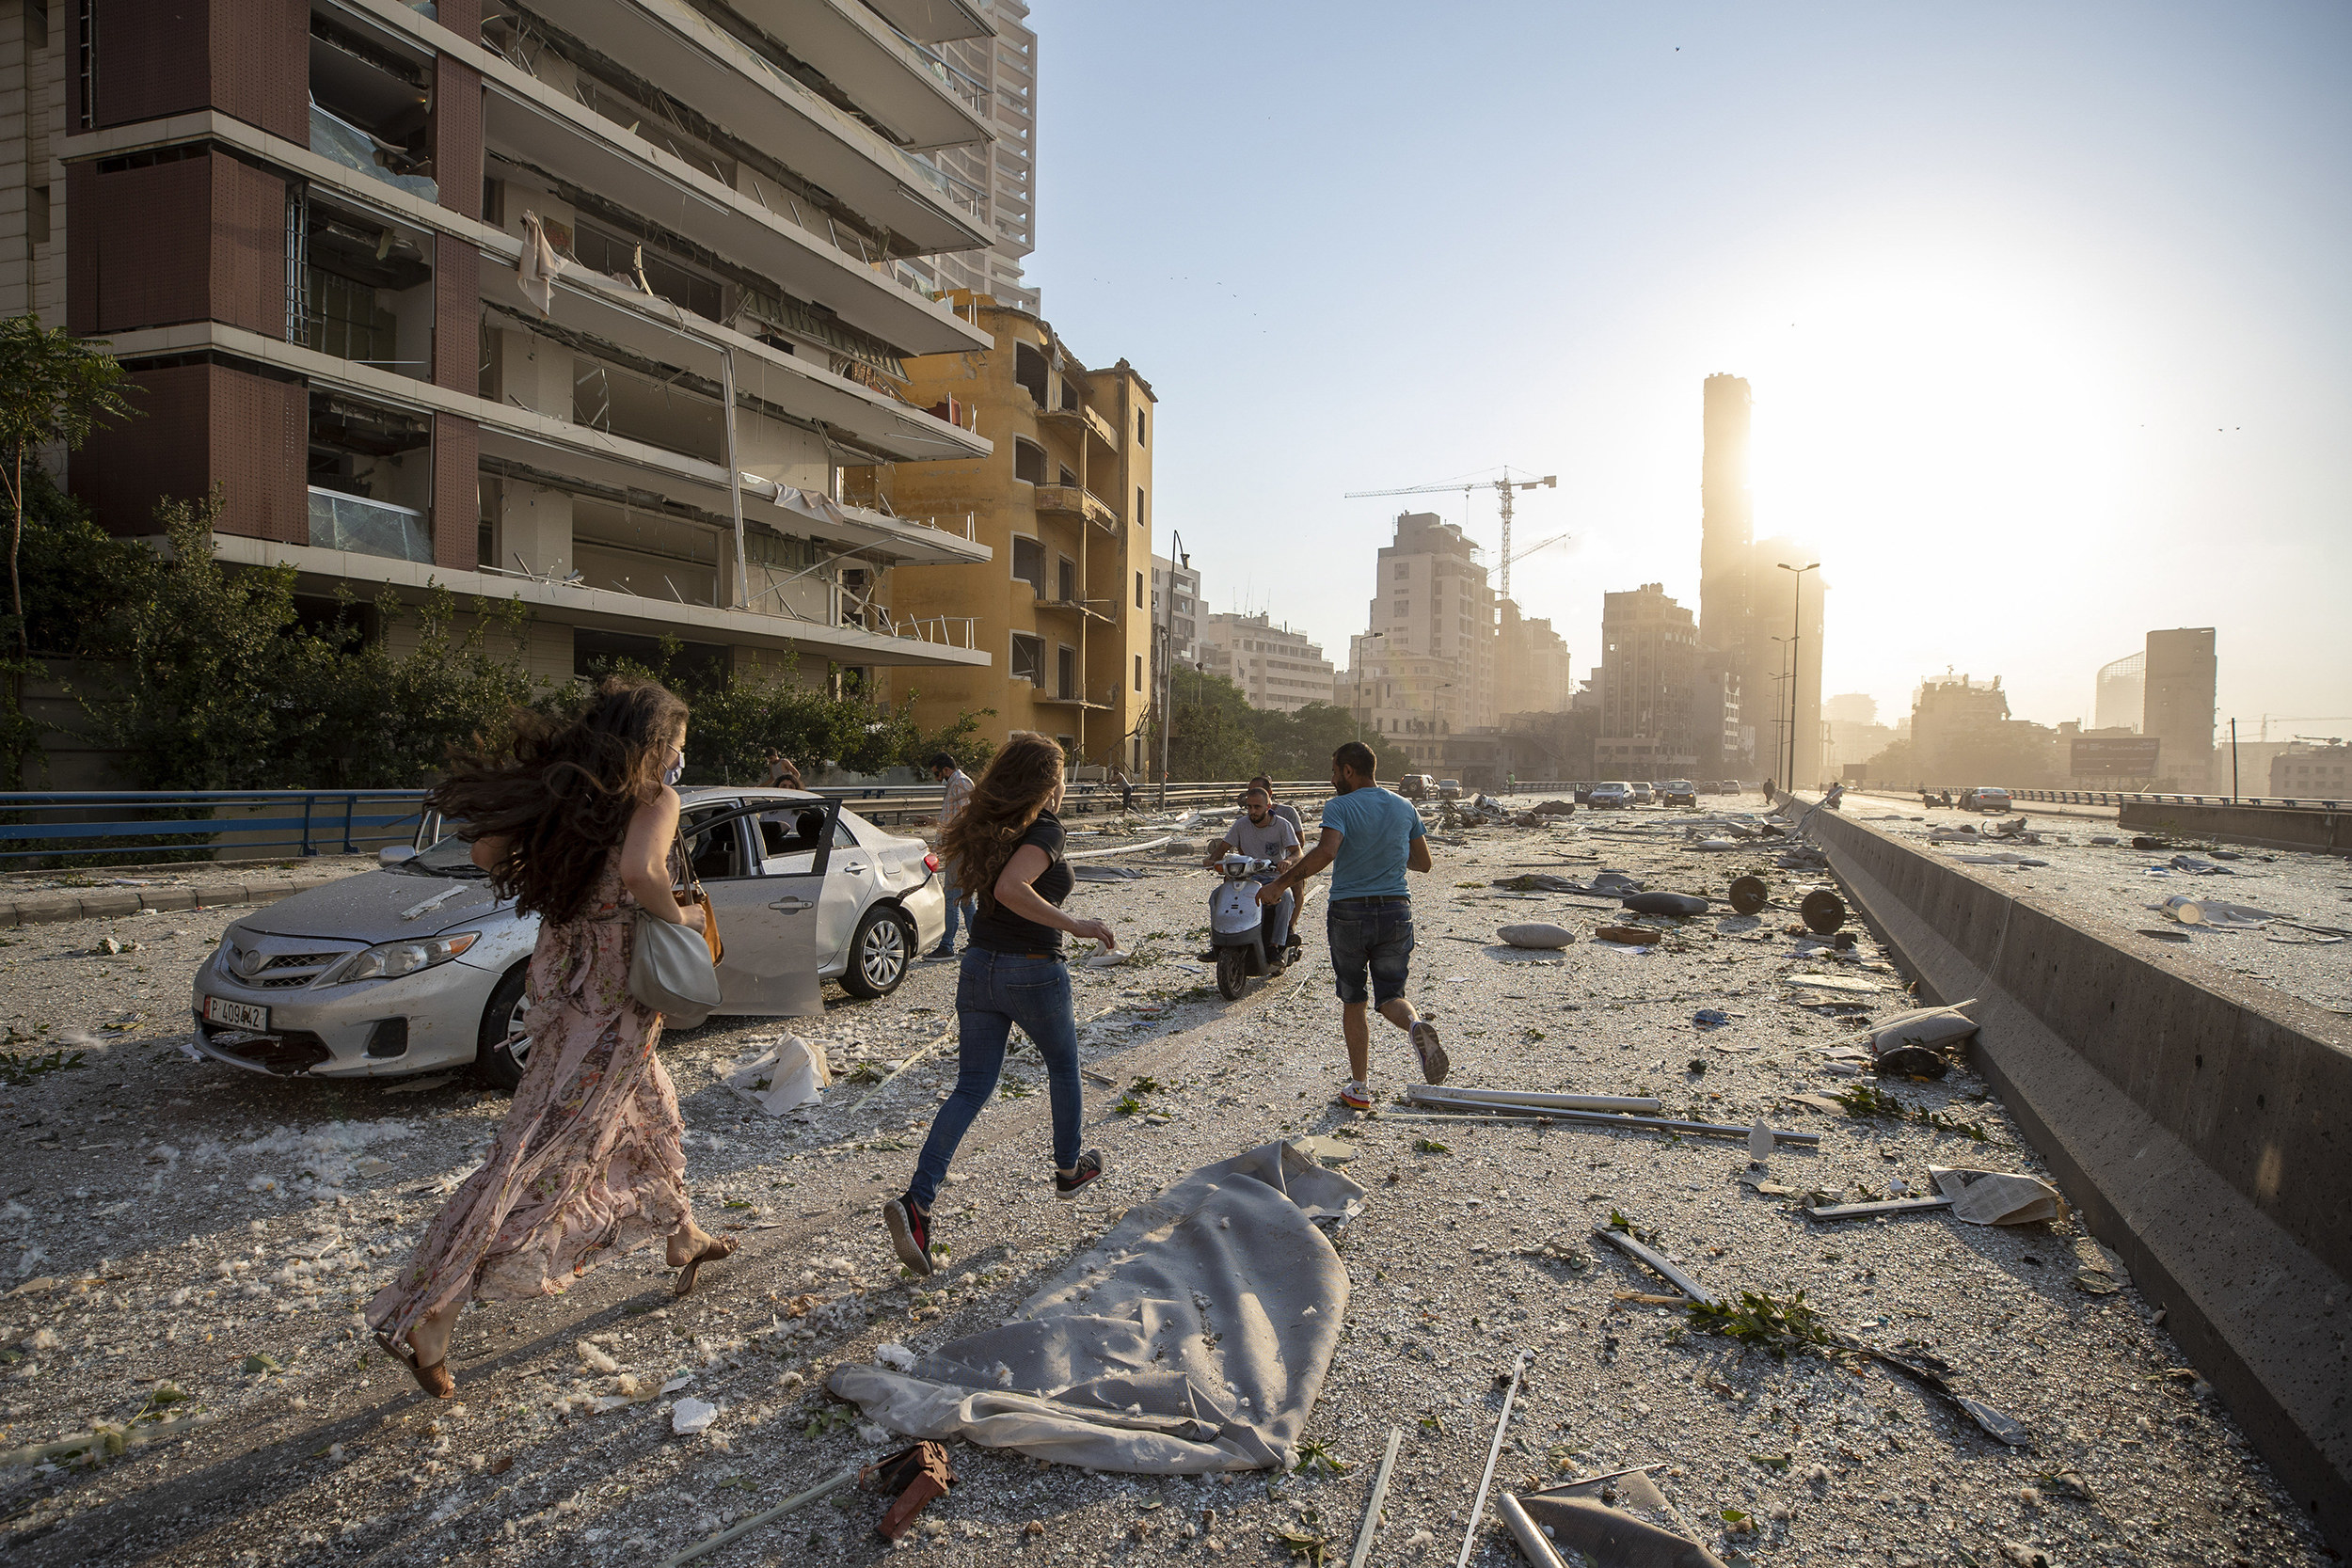 Two women and a man run down a street covered with debris.